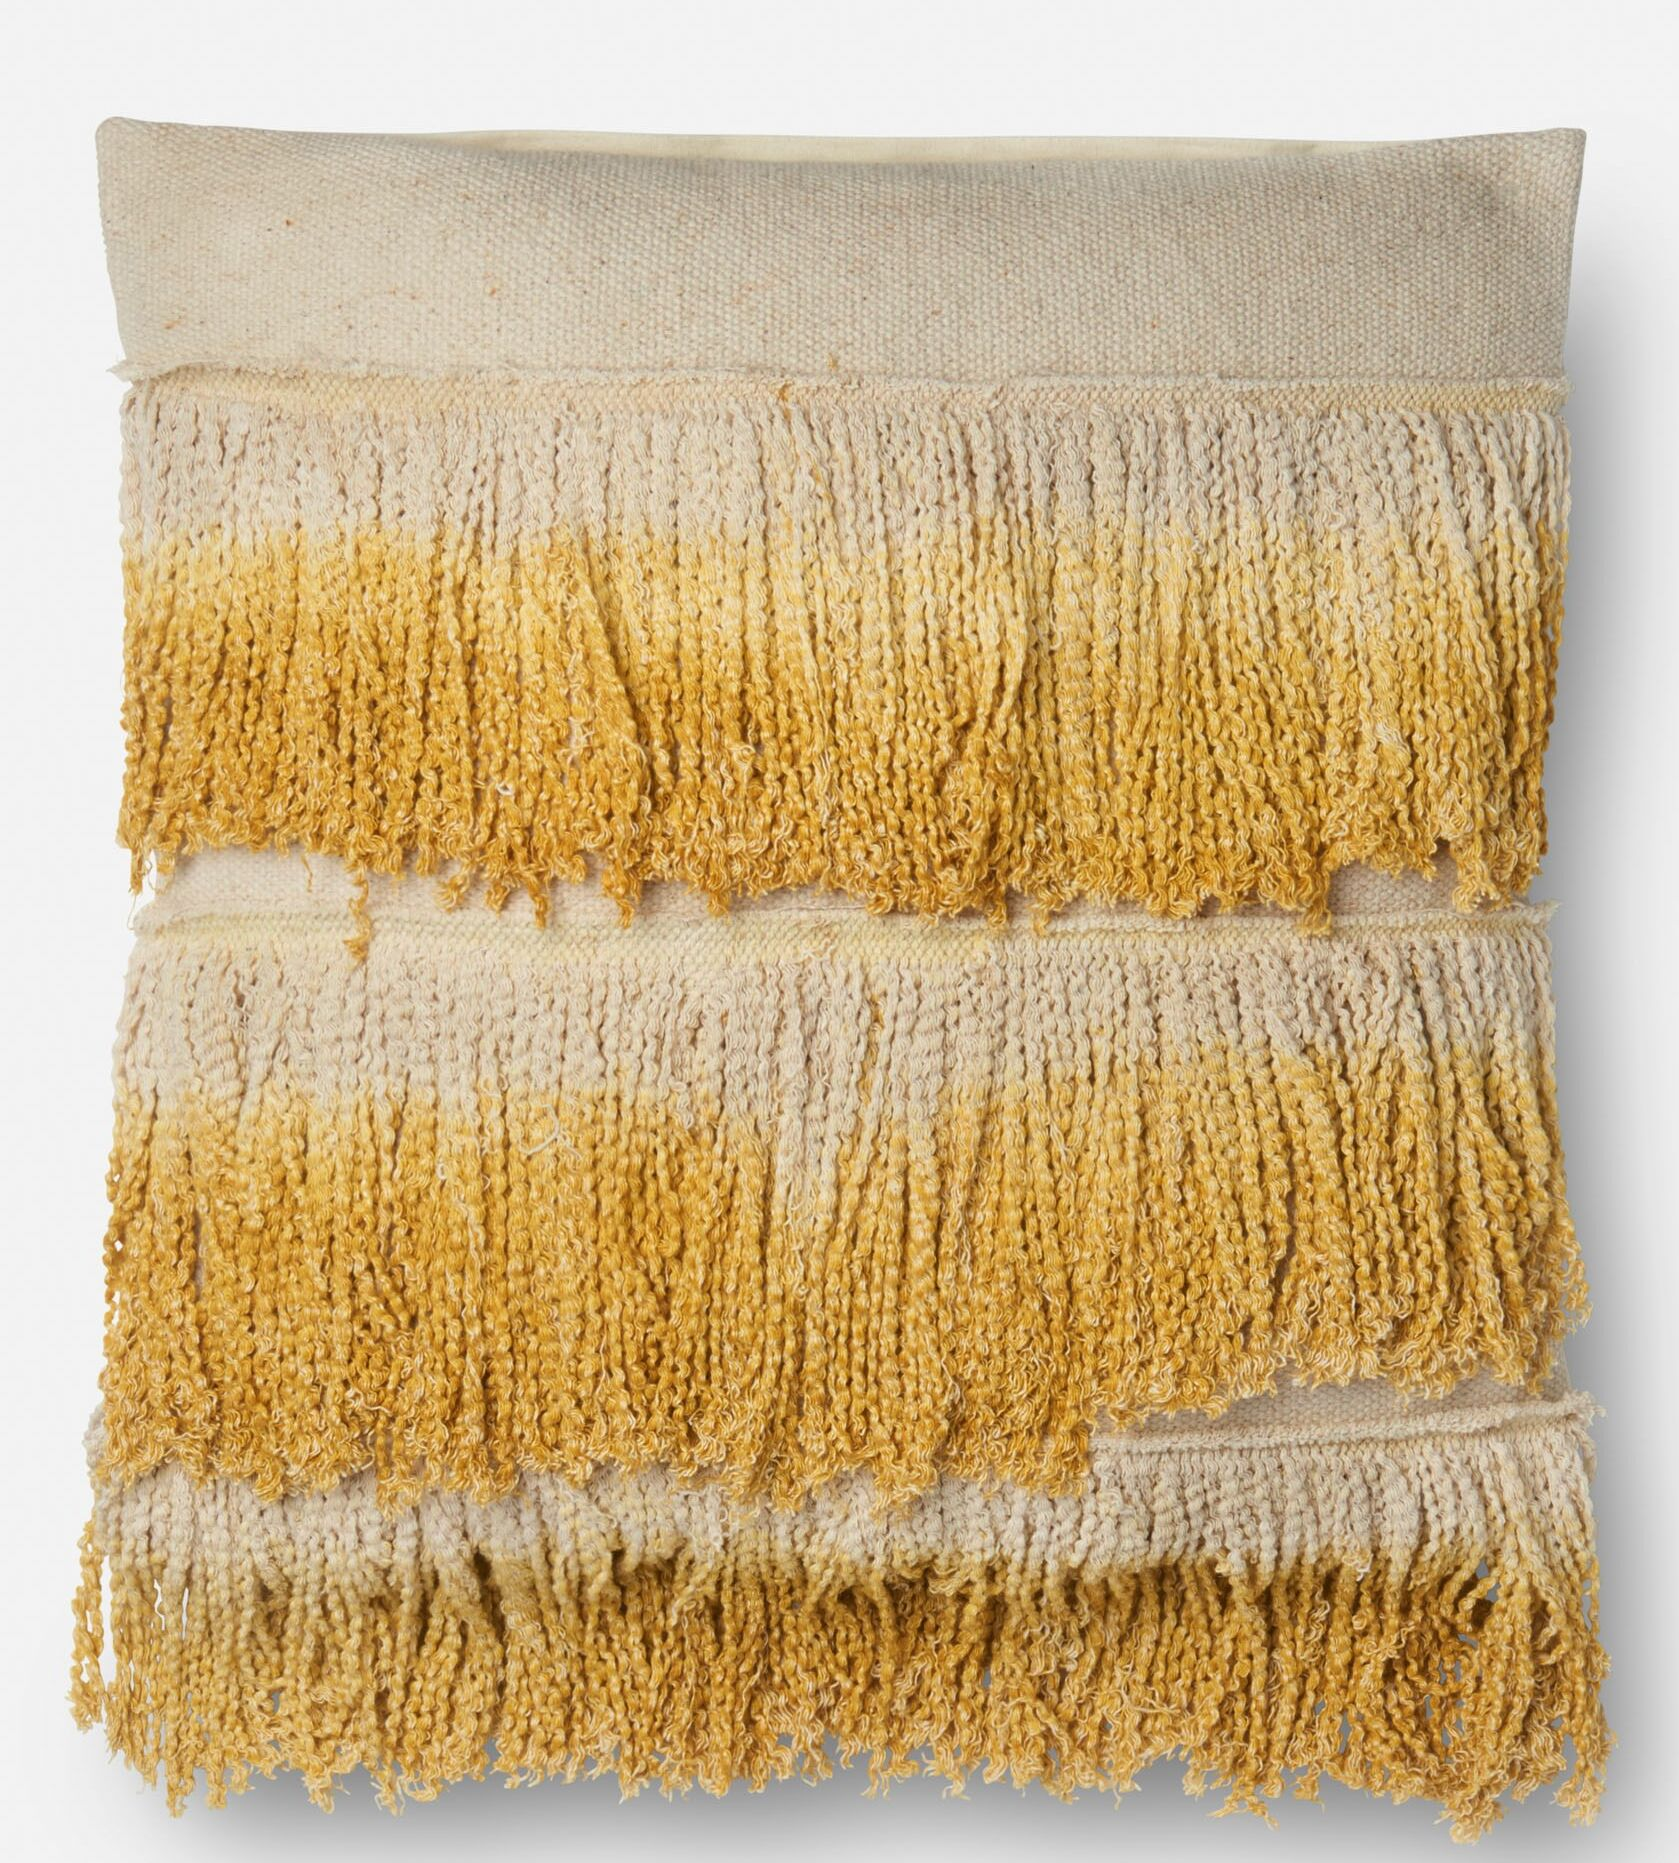 Cambra Cotton Throw Pillow Fill Material: Down/Feather, Color: Gold/ Ivory, Type: Pillow